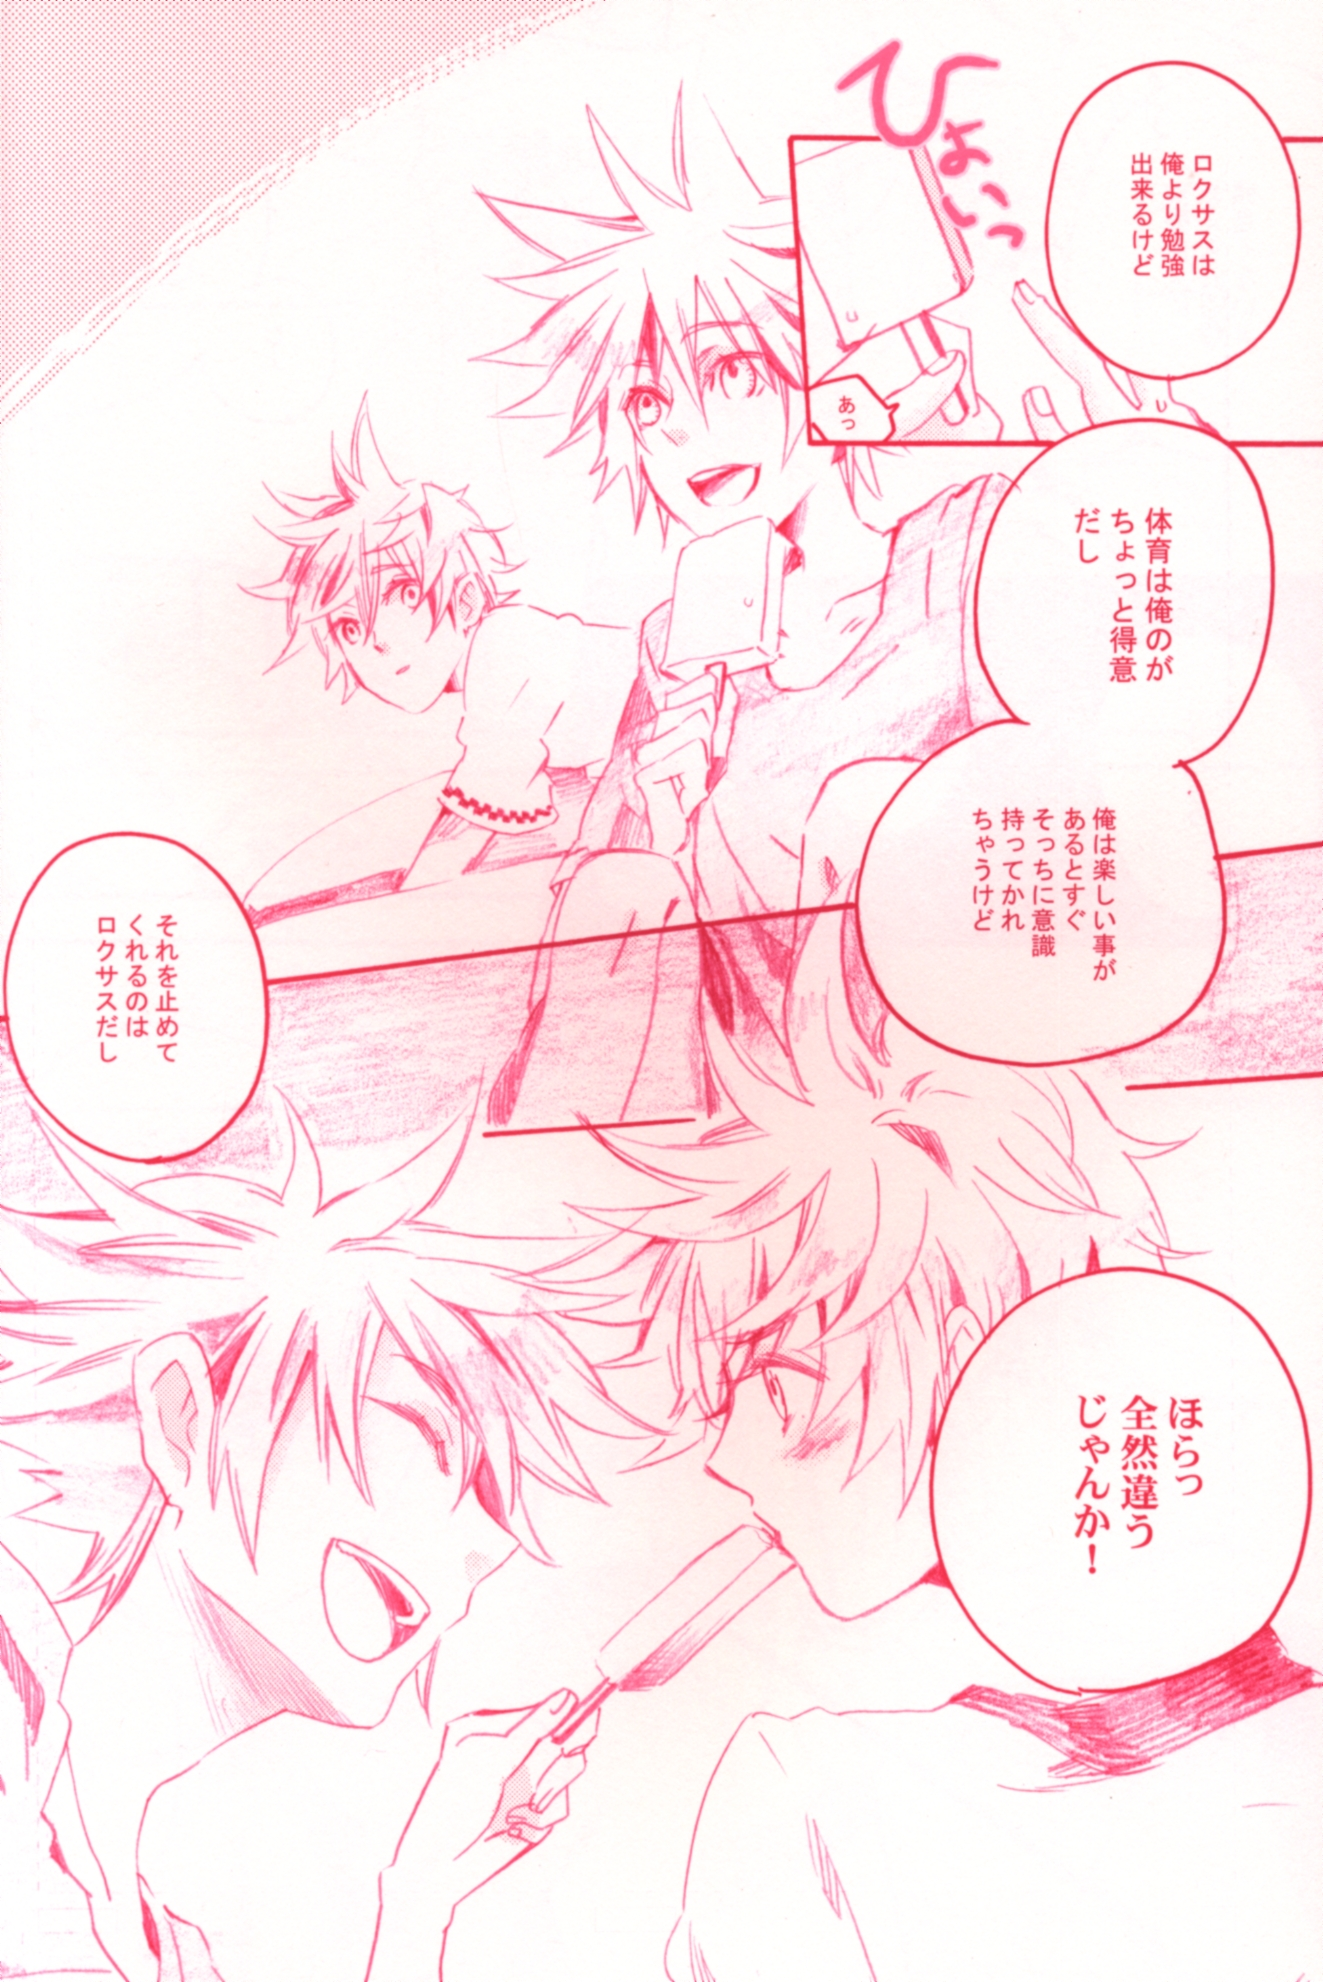 Doujinshi - KINGDOM HEARTS (Spare the rod and spoil the child.) / RS*2T